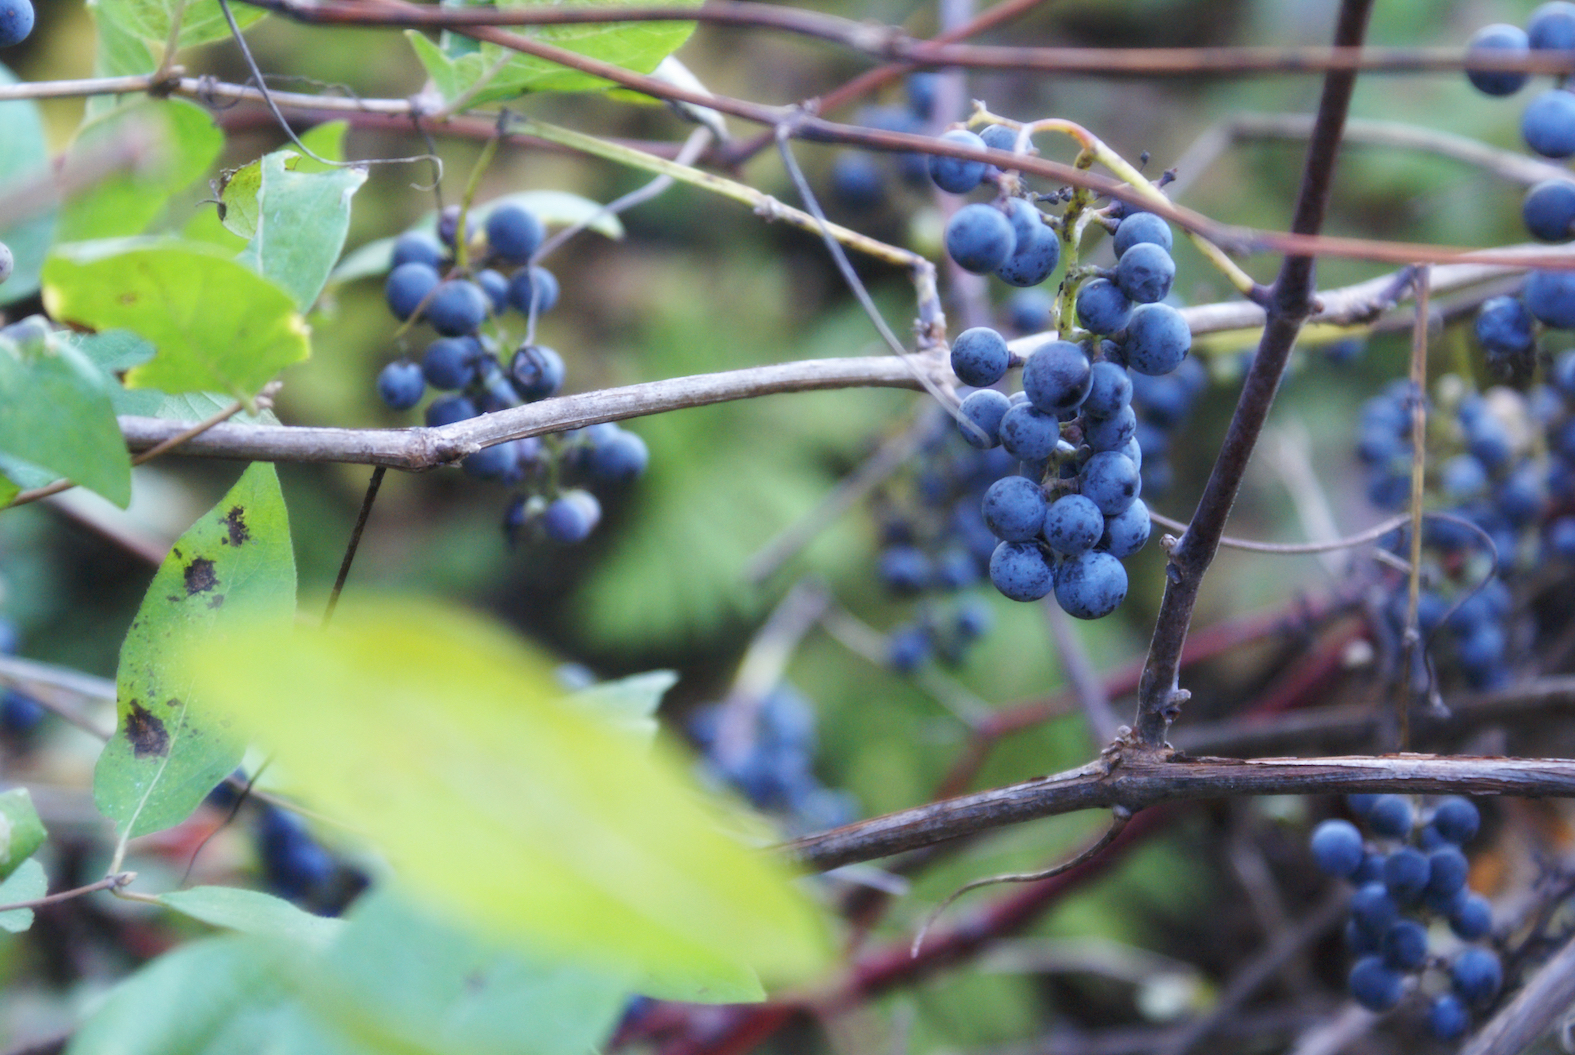 A new study conducted by researchers from the University of Milan has found a natural alternative to chemical pesticides in wild grape yeast.